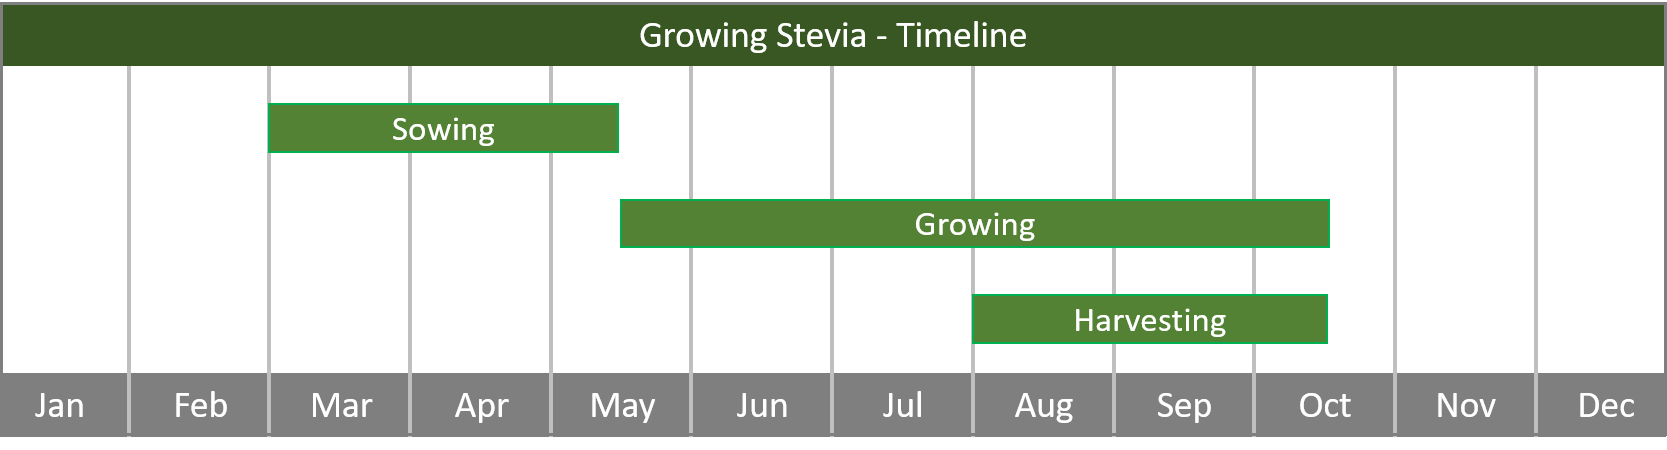 how to grow stevia from seed to harvest at home timeline